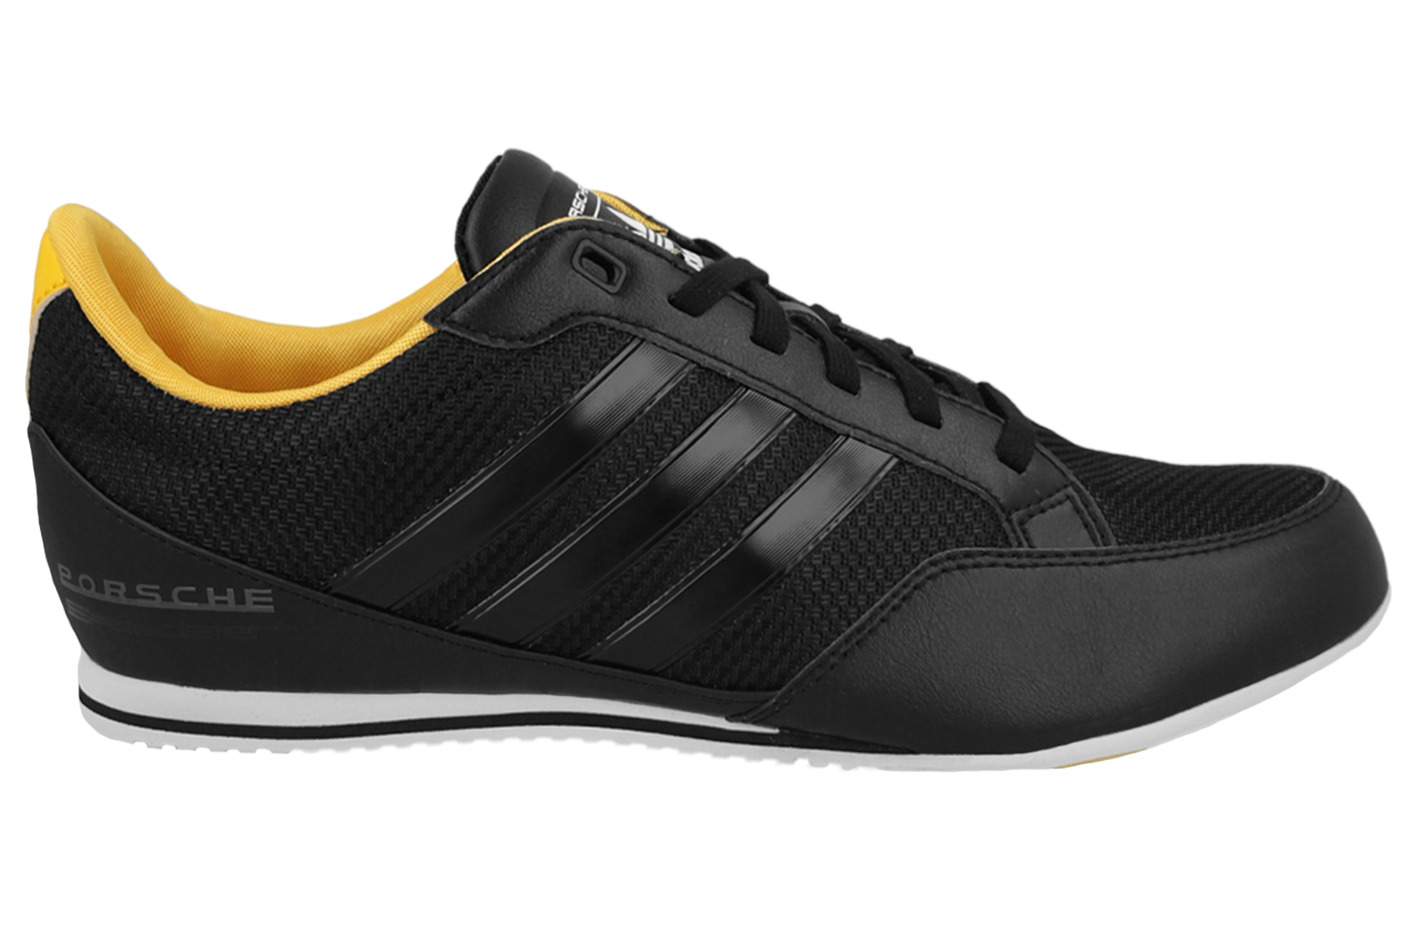 pretty nice a0c8d e1fc8 ... MEN S SHOES ADIDAS ORIGINALS PORSCHE SPEEDSTER B35821 ...